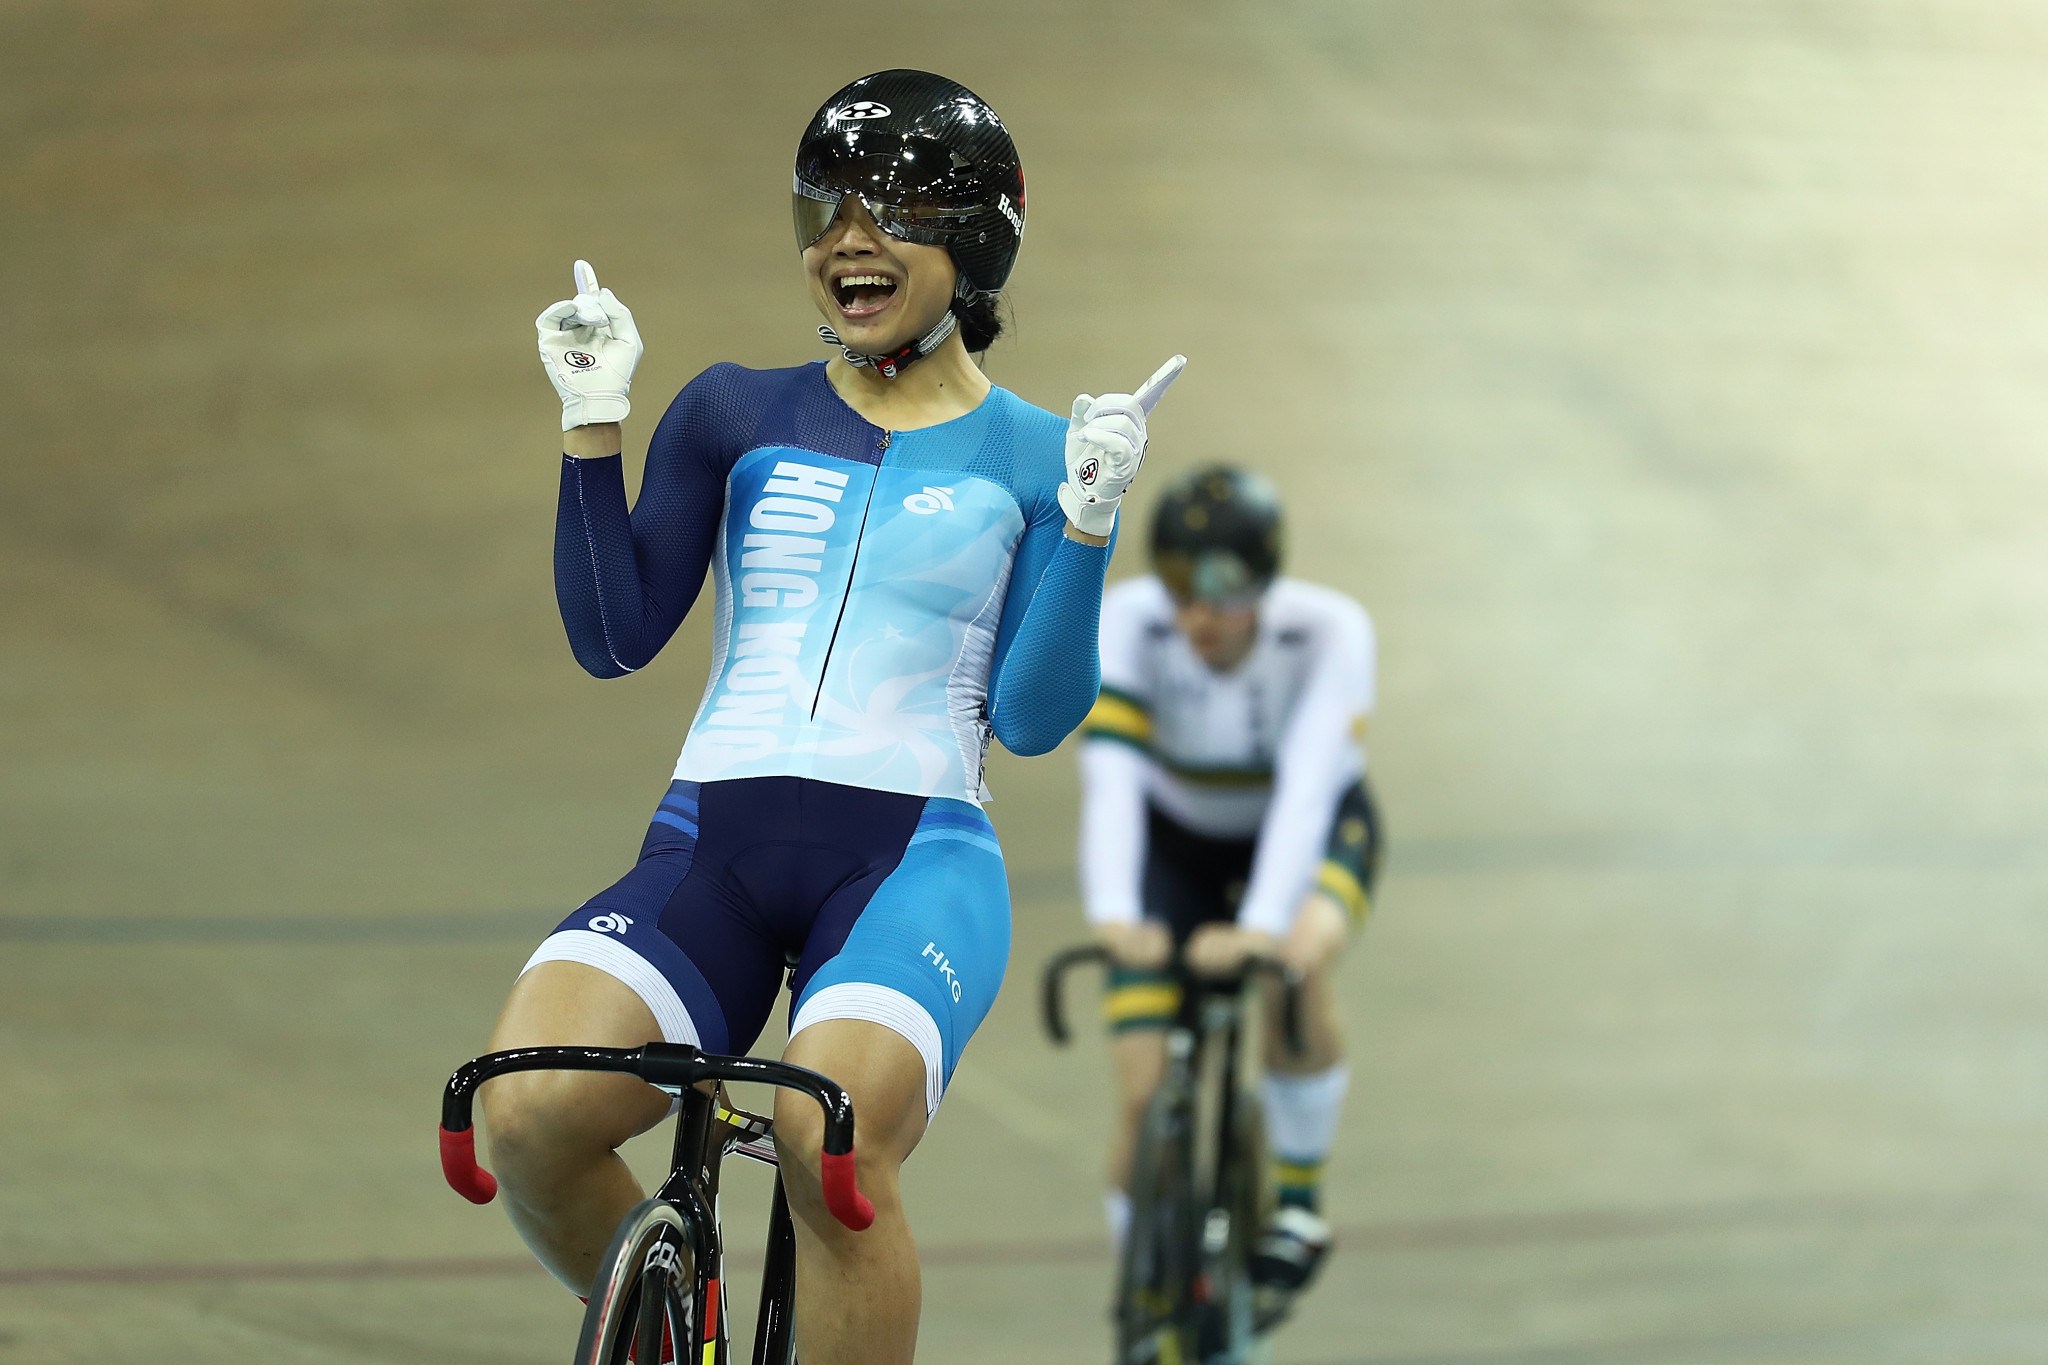 Home favourite earns sprint victory at UCI Track Cycling World Cup in Hong Kong